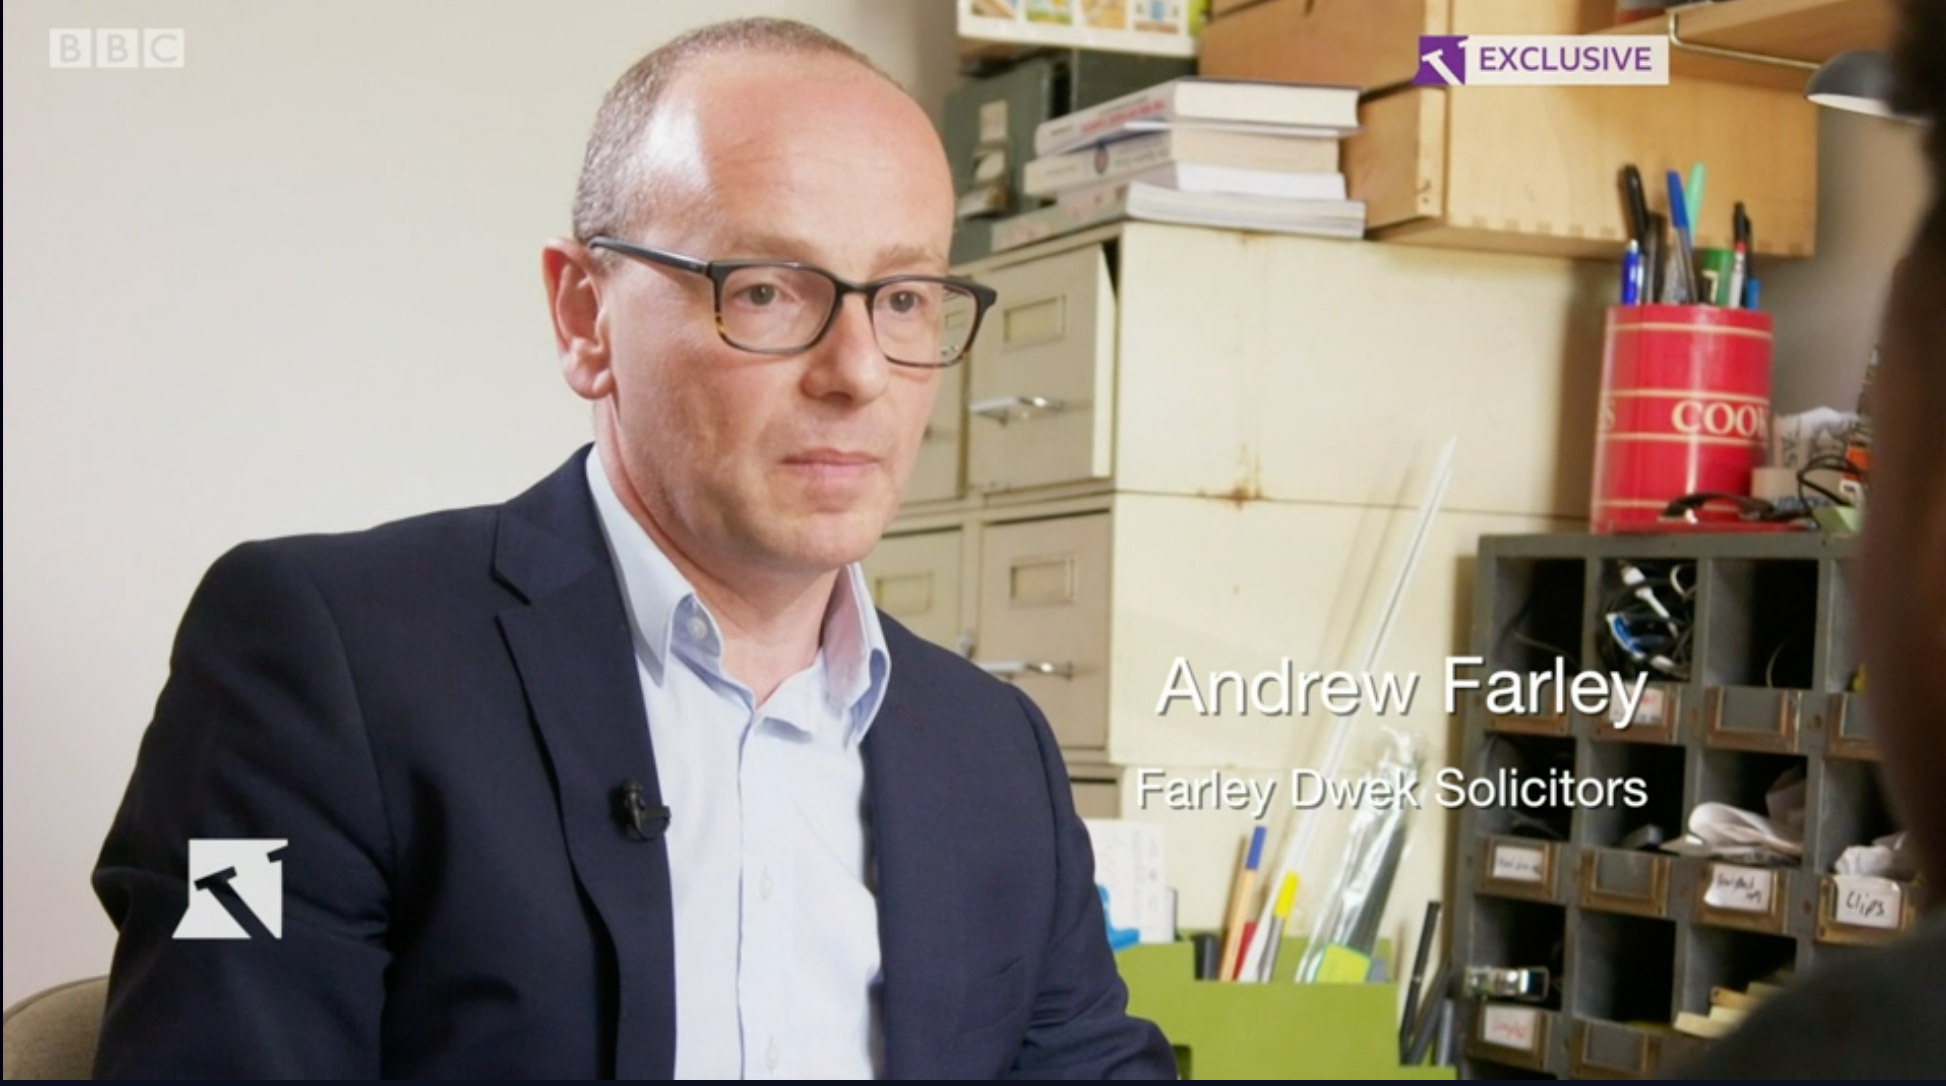 Andrew Farley, Solicitor, on the BBC Victoria Derbyshire Show (11.06.19)